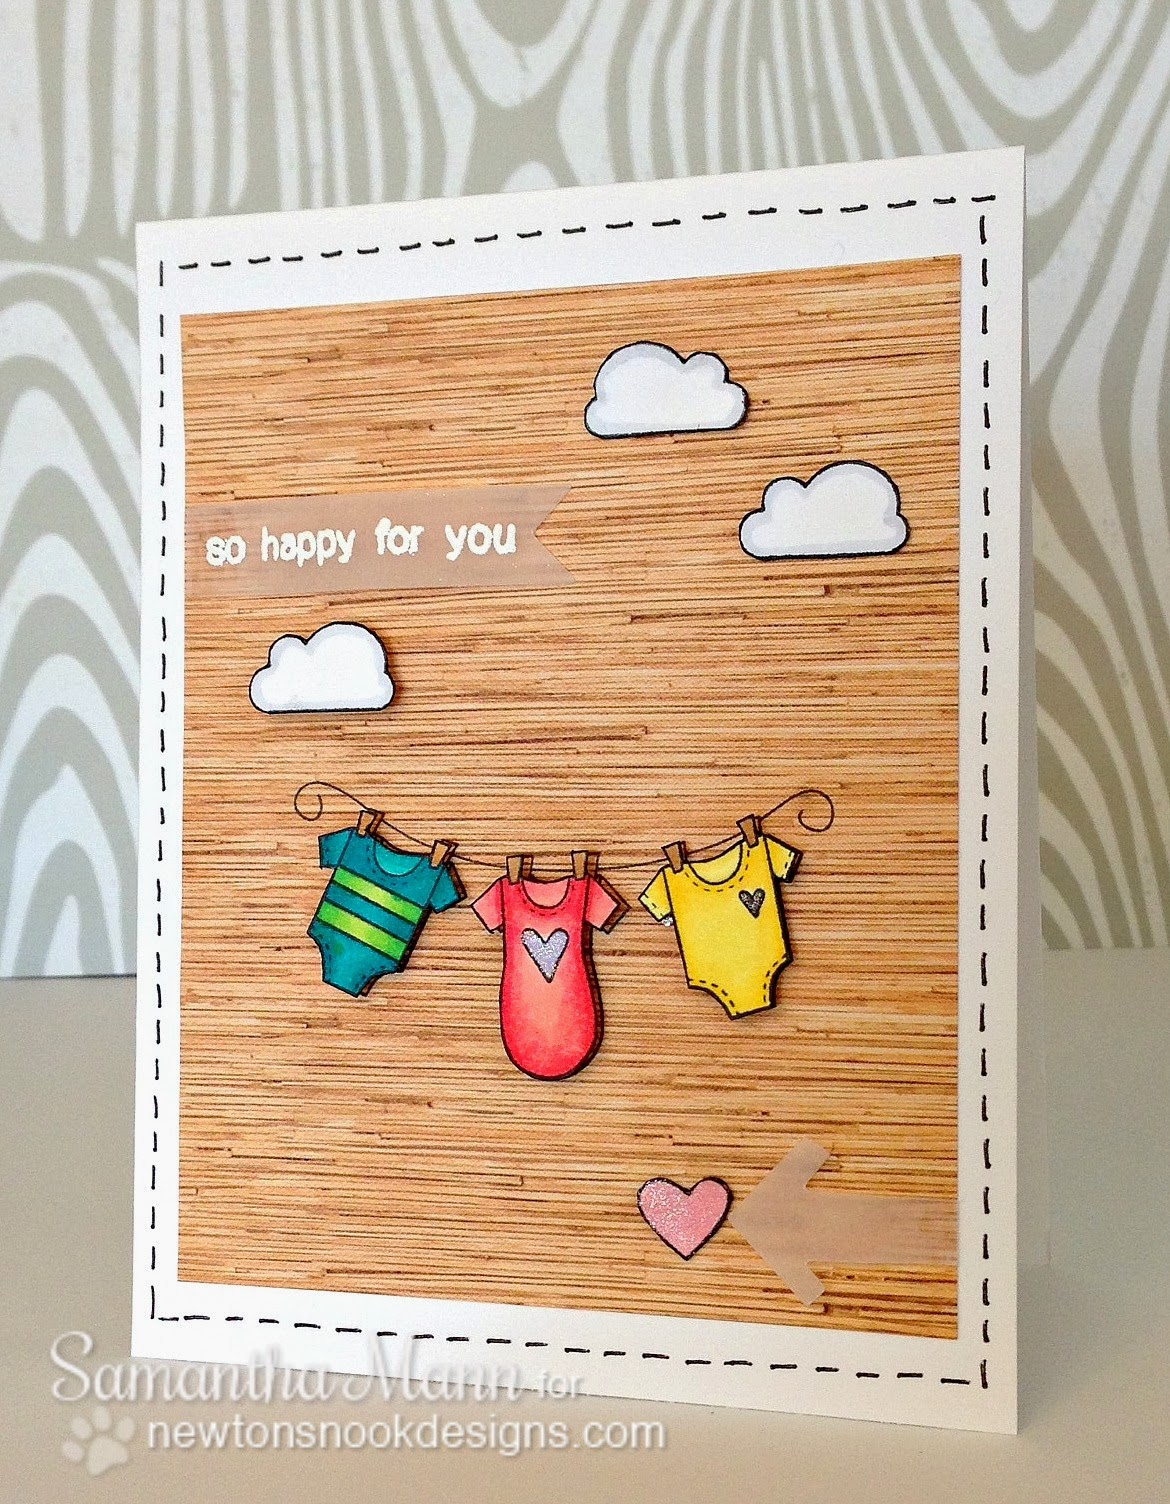 Baby Card by Samantha Mann using Winged Wishes Stamp set by Newton's Nook Designs